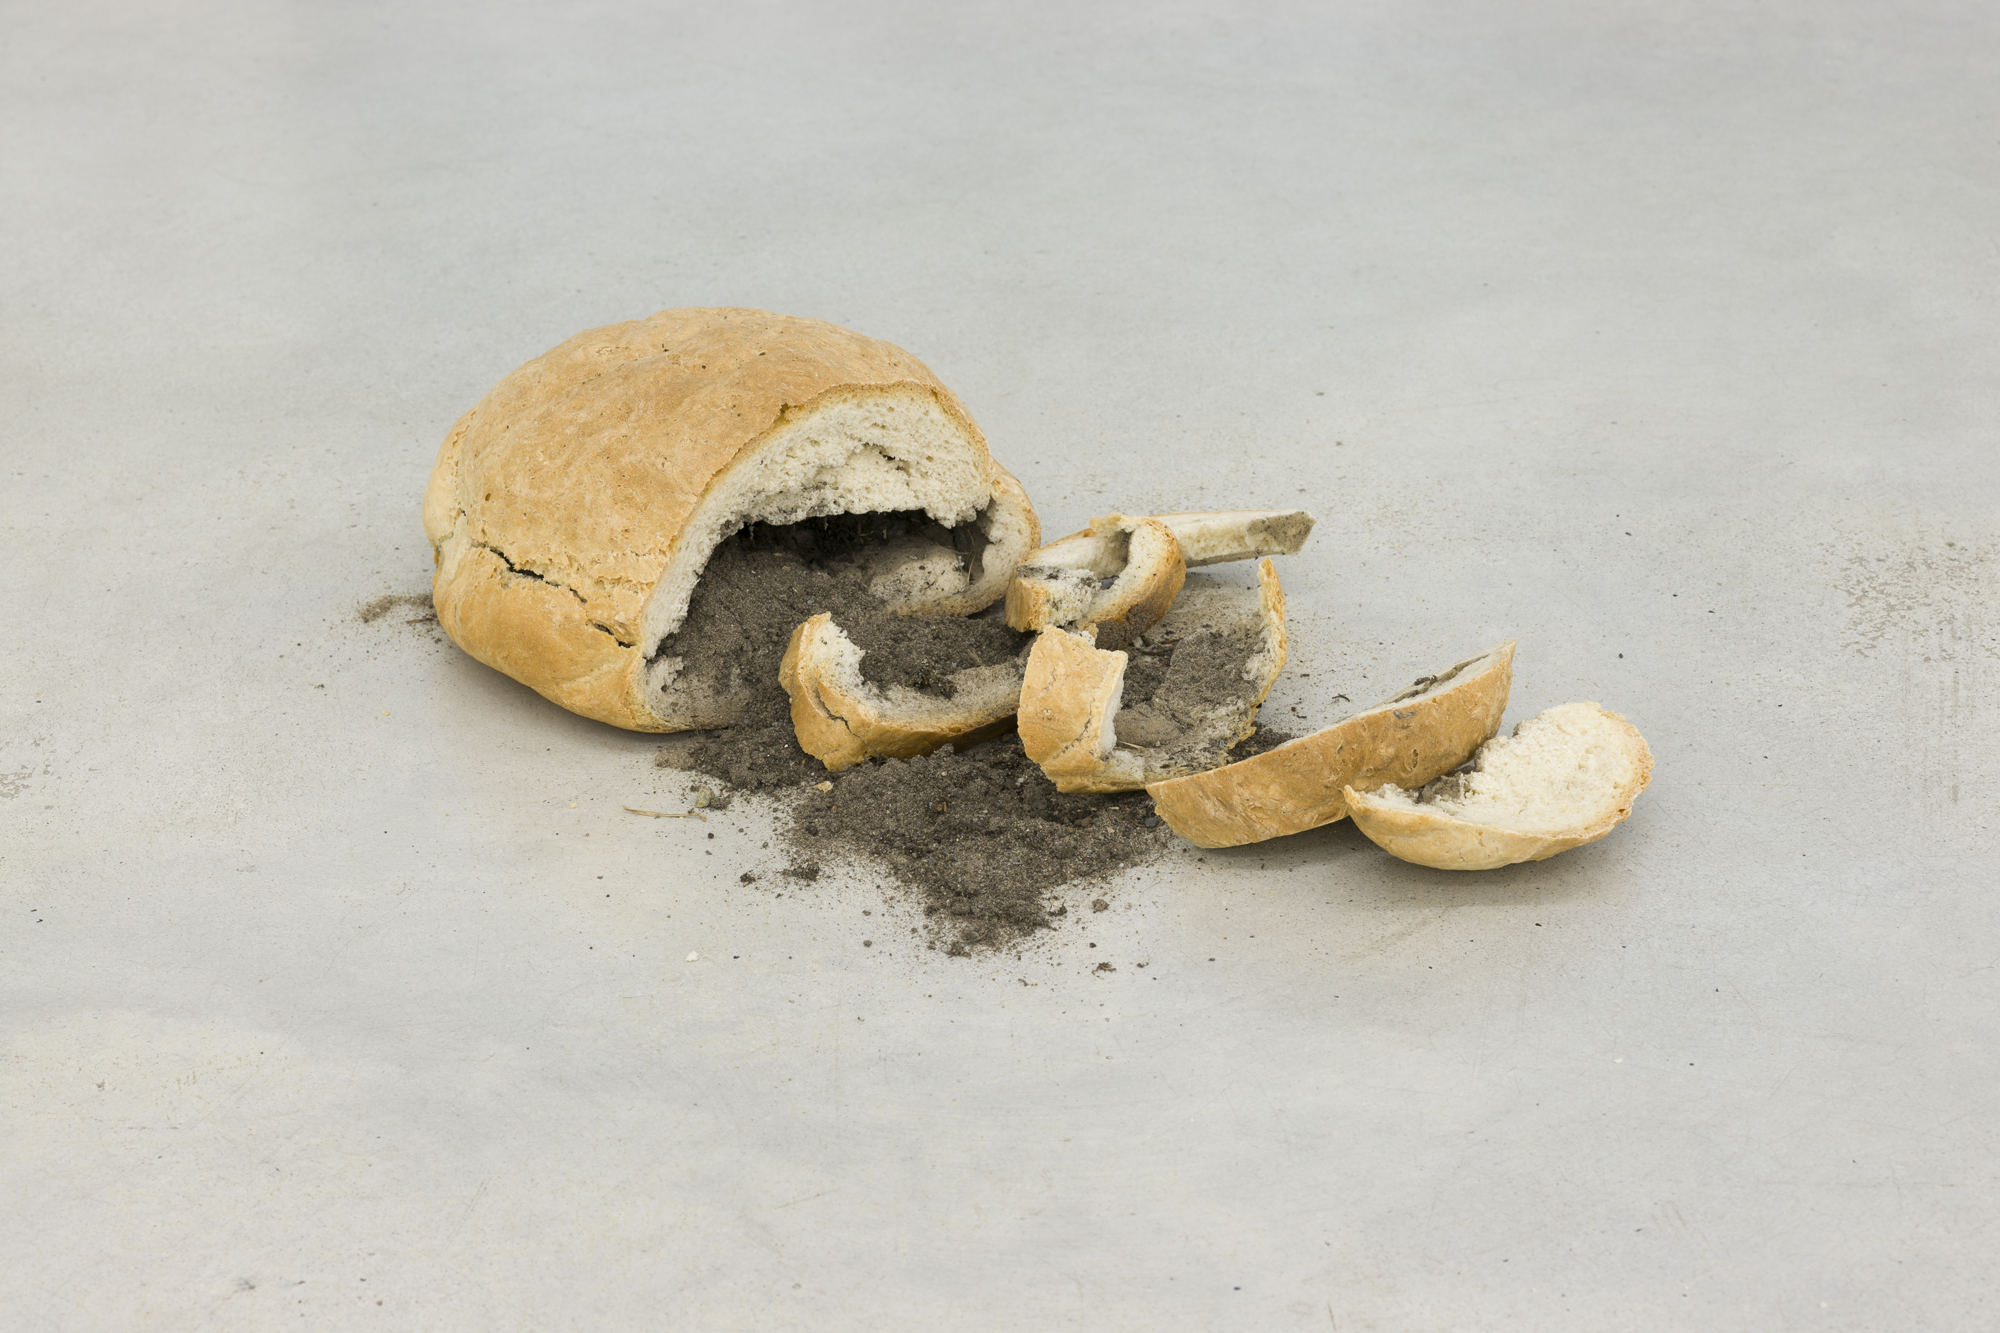 Bread with Soil, bread baked with German and Polish soil, variable dimensions, 2014 - 2015